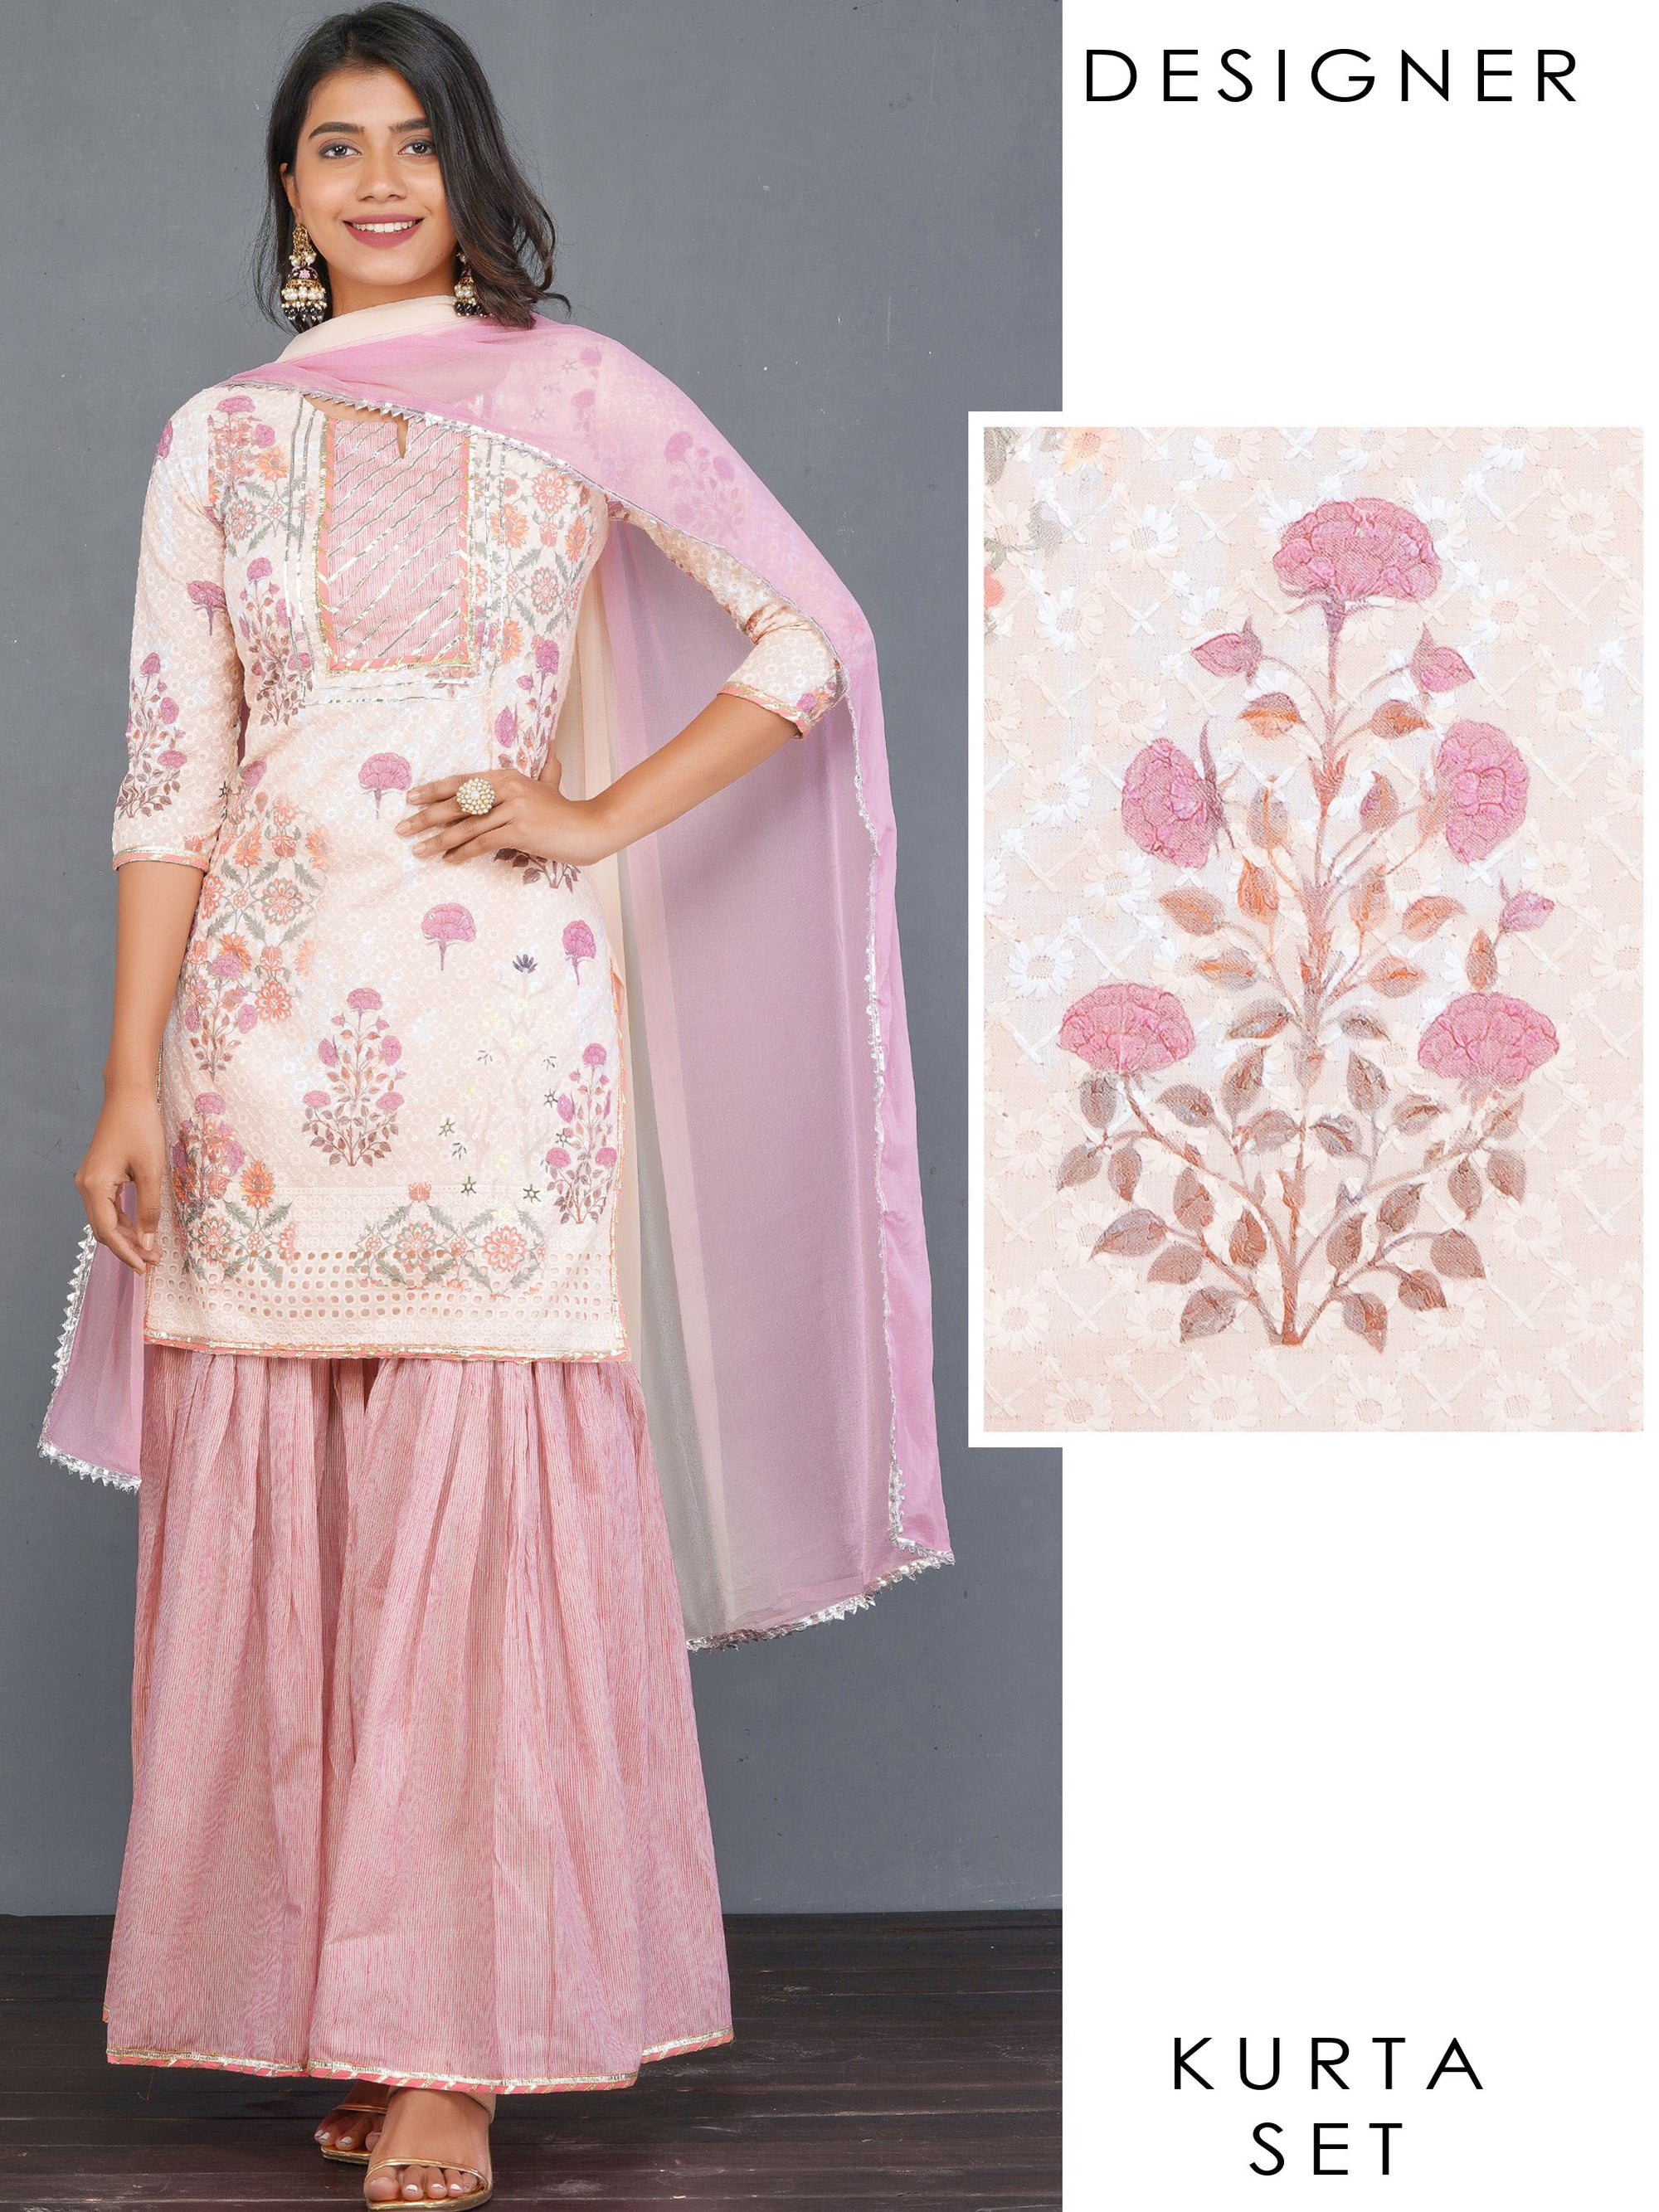 Floral, Hakoba Embroidered Kurti , Pin Striped Sharara & Ombre Dupatta Set